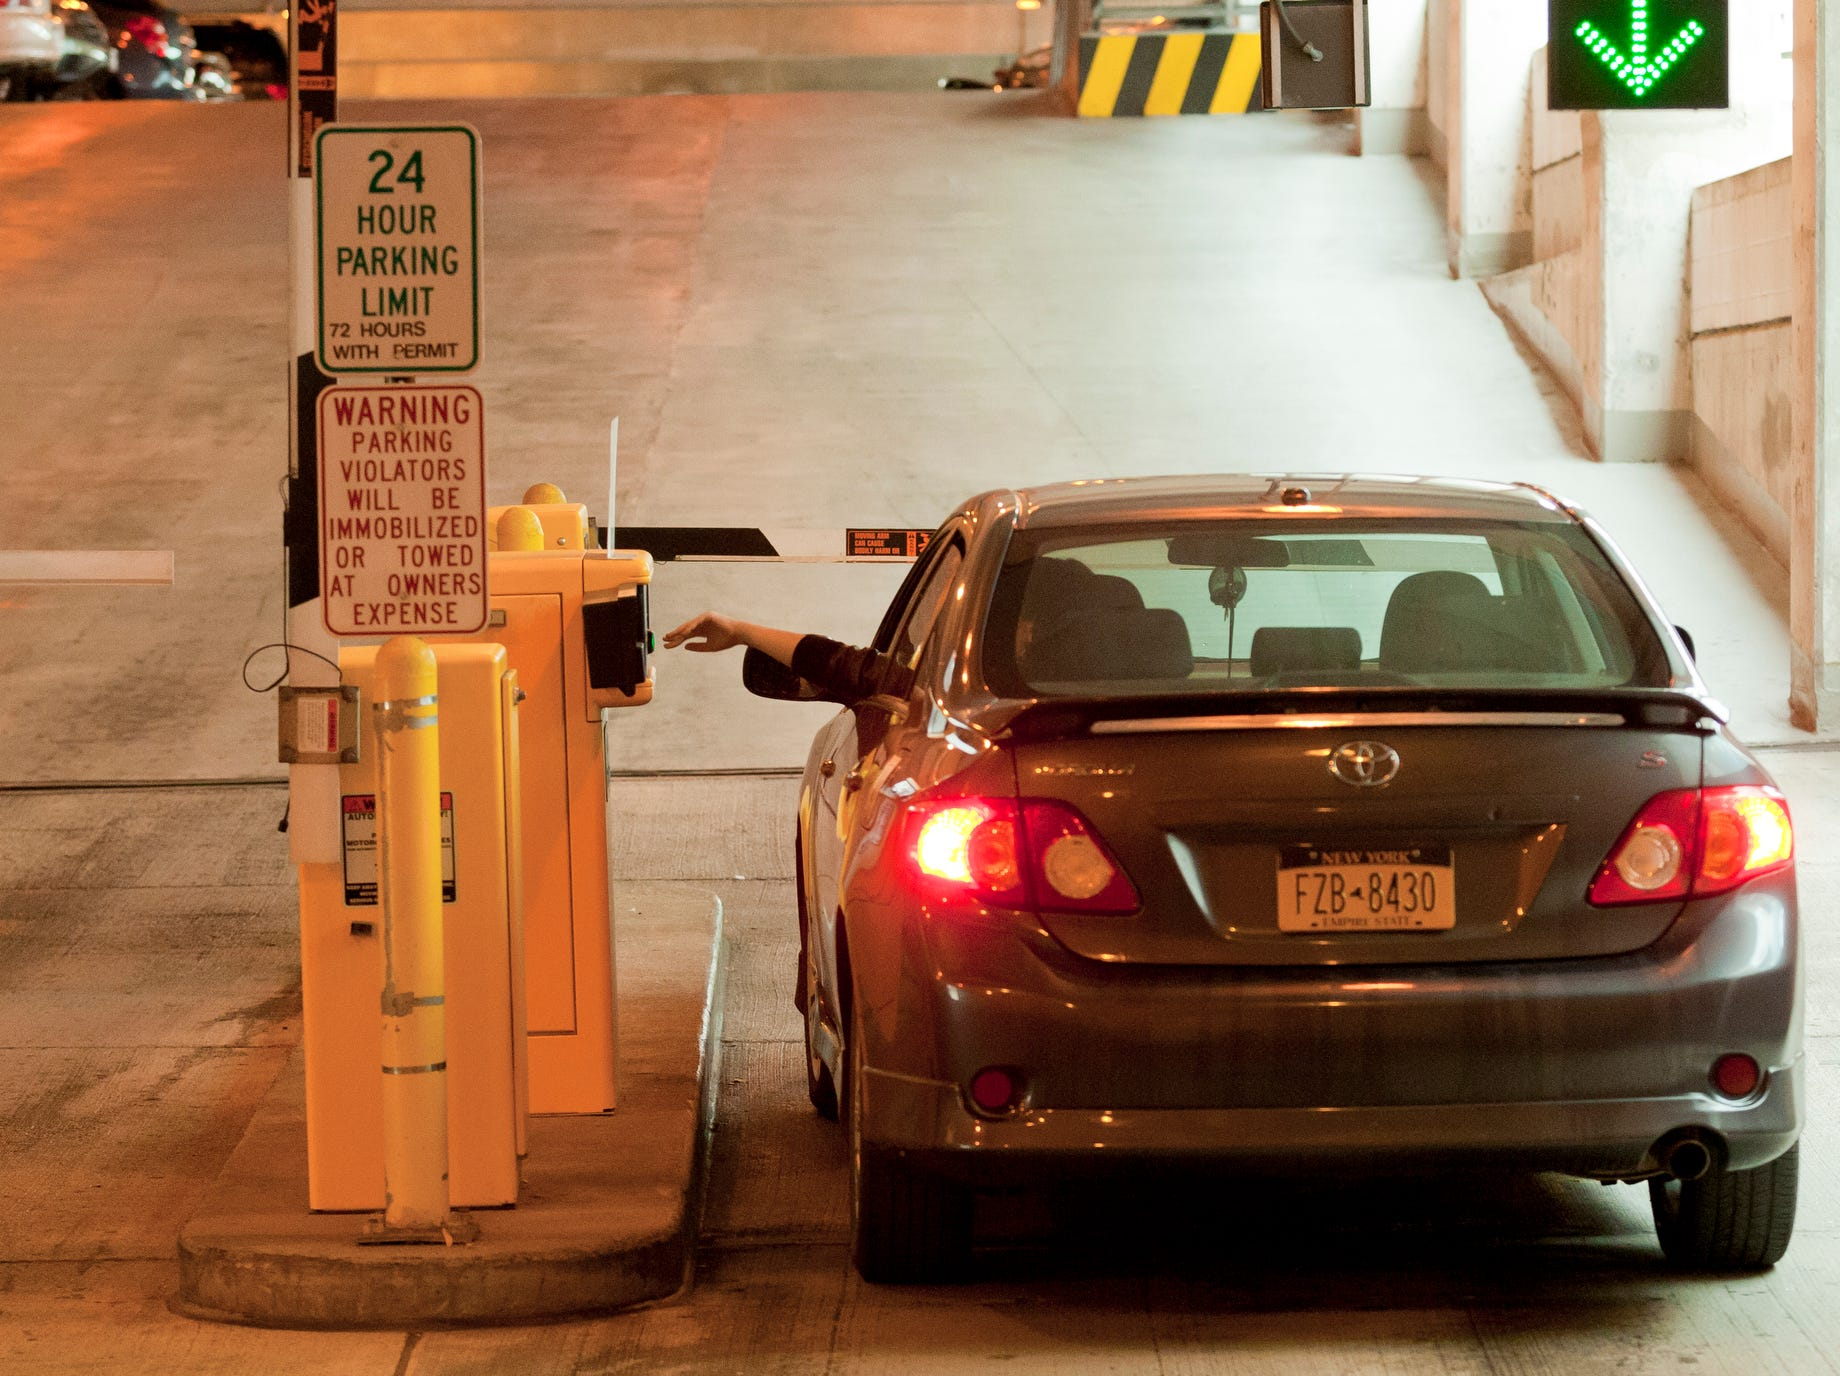 A motorist gets their ticket as the enter the Green Street Parking Garage in the City of Ithaca.